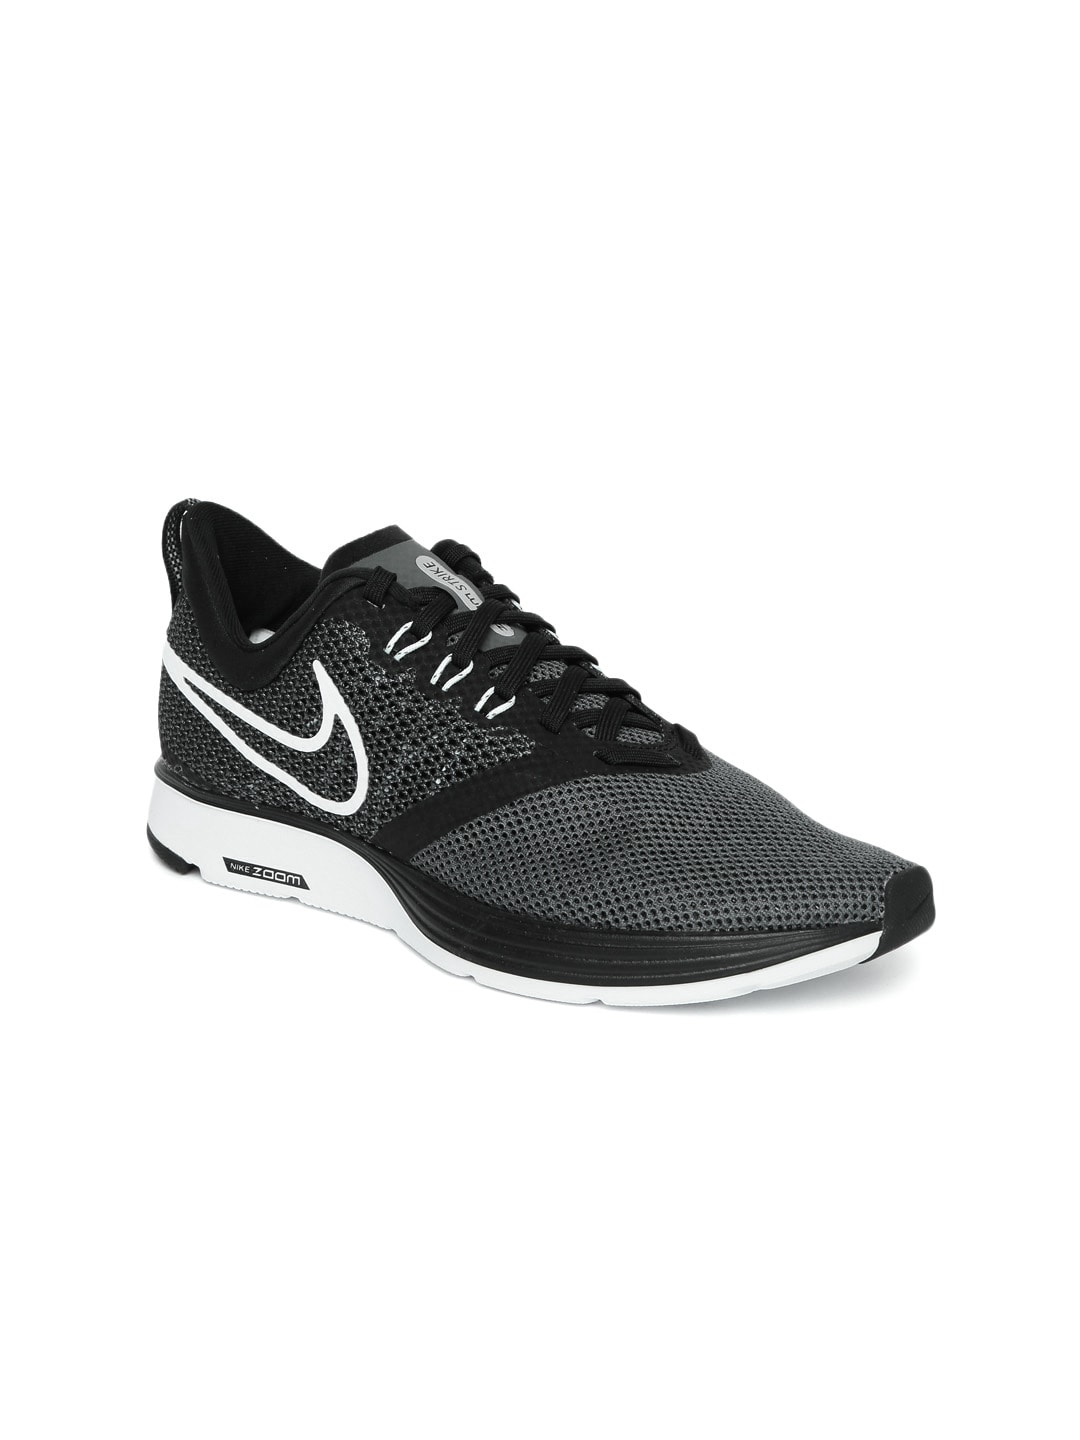 e6b31673fd18d Nike Shoes - Buy Nike Shoes for Men